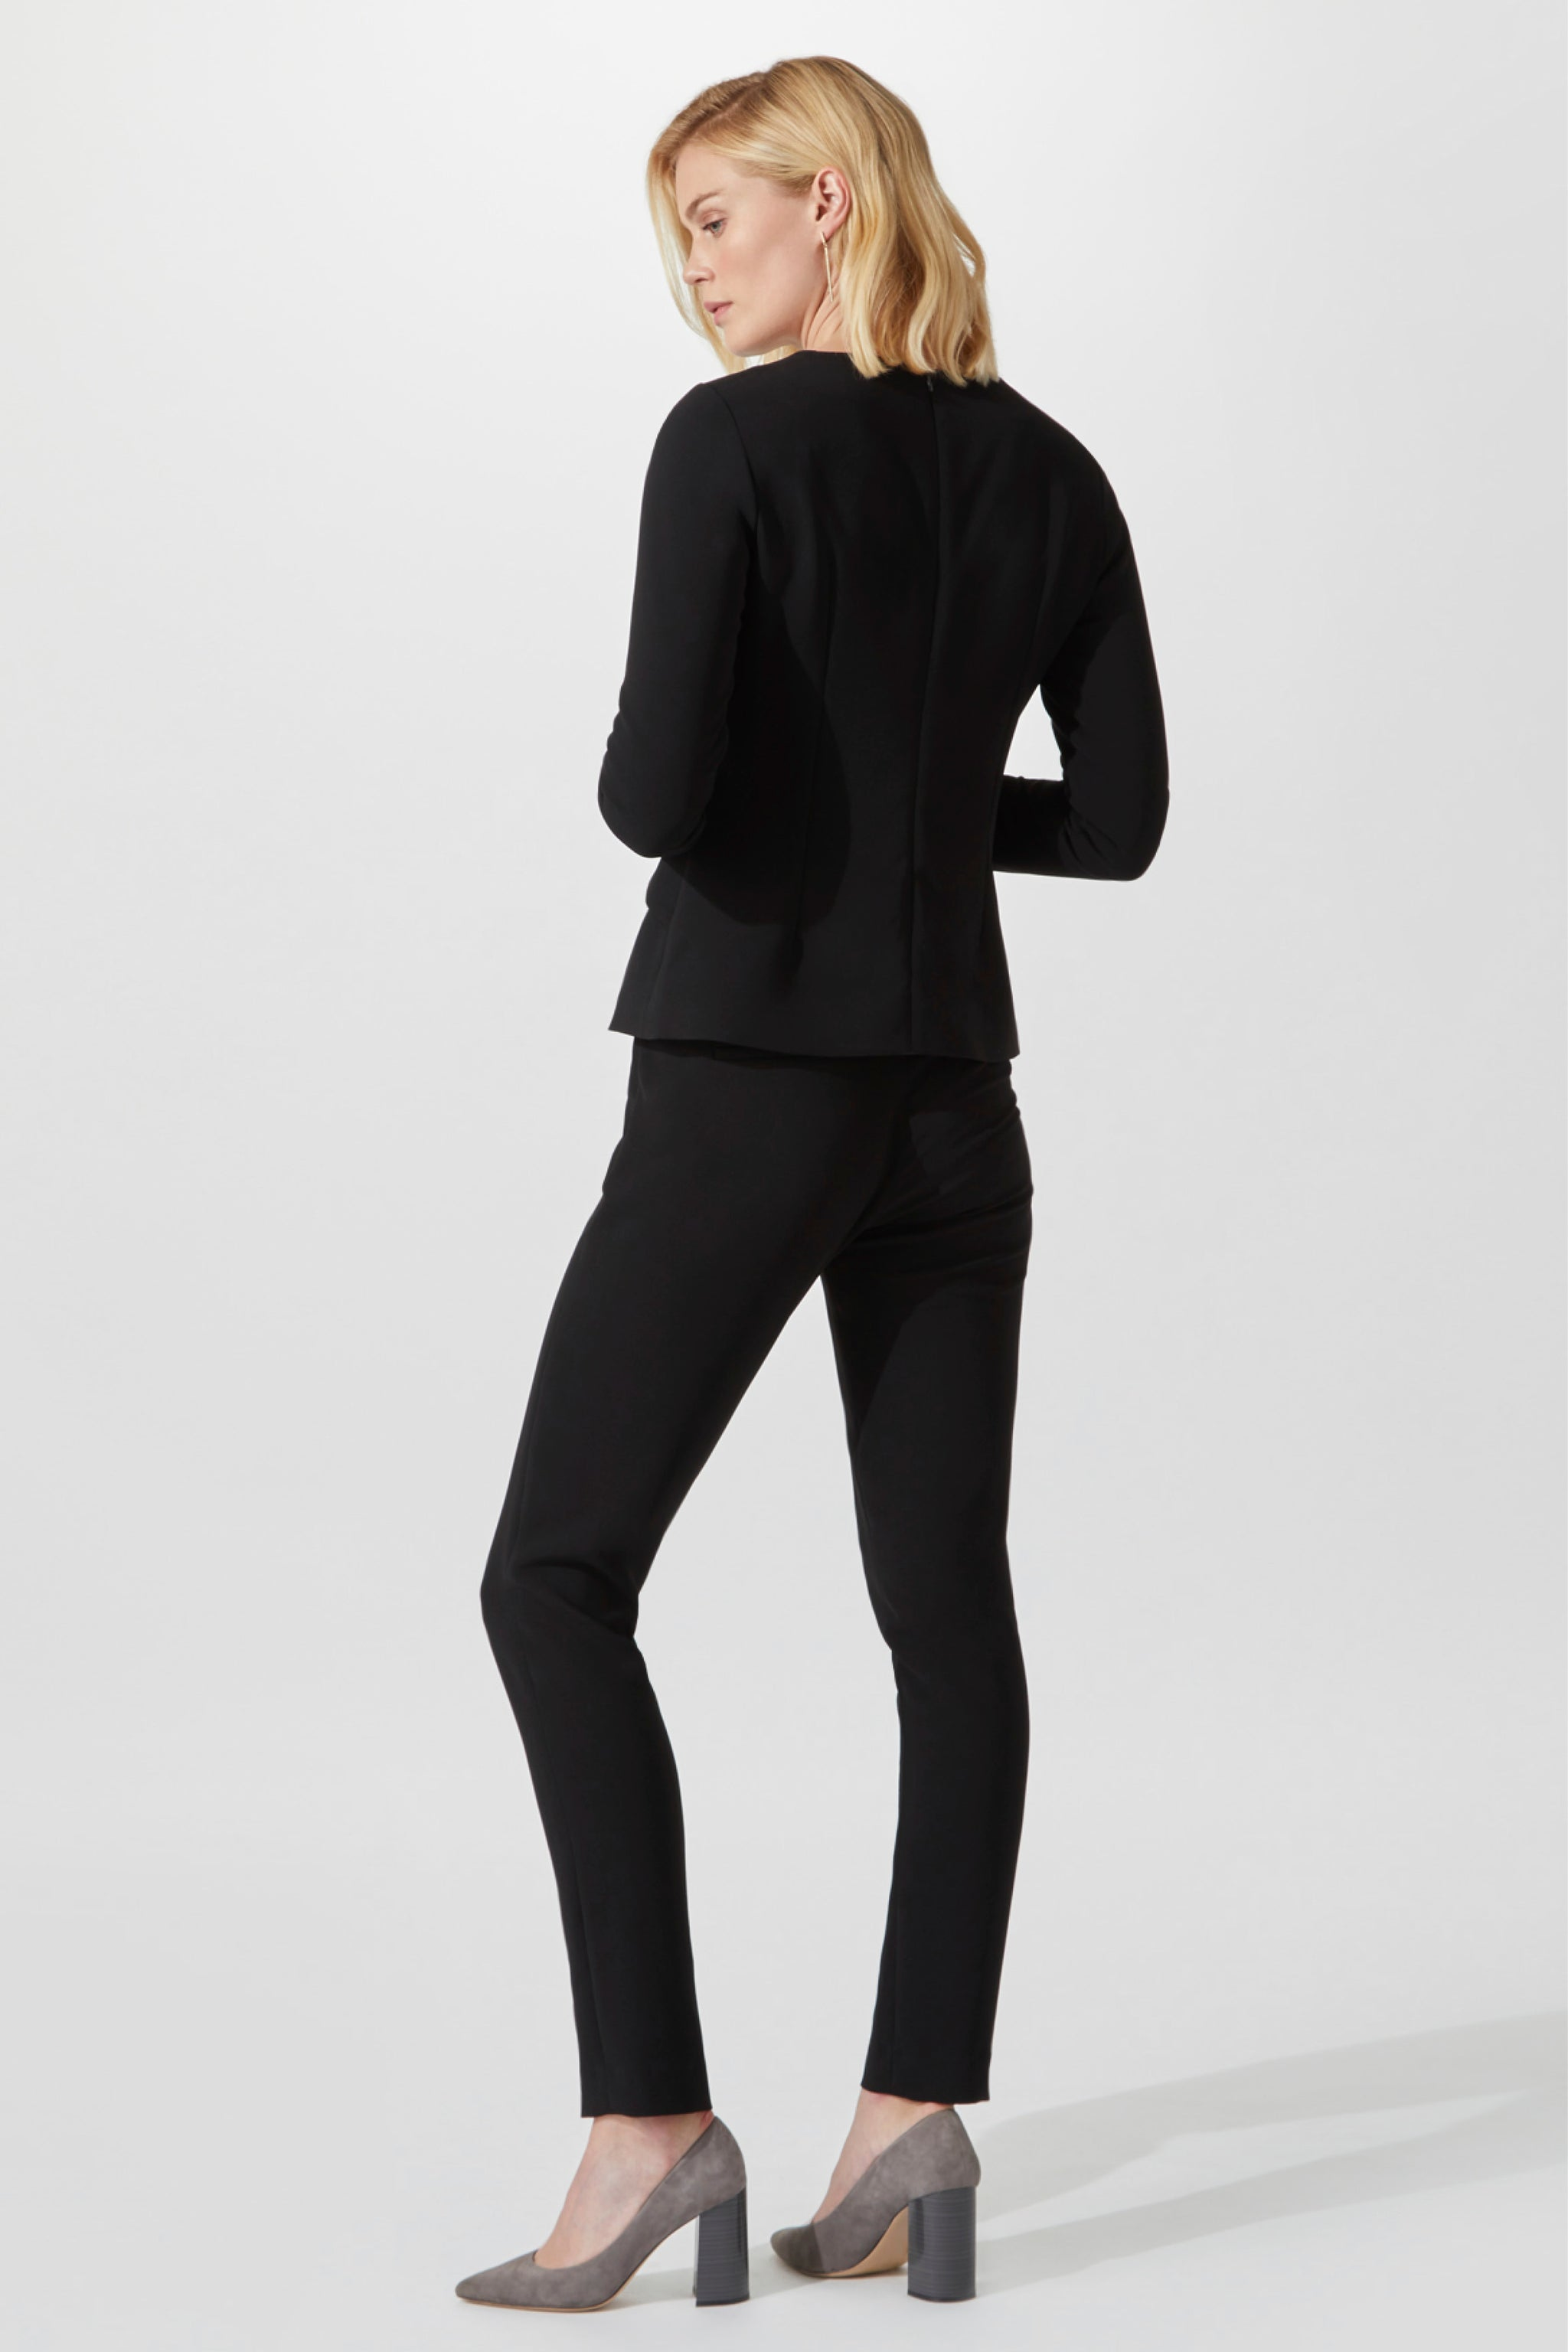 Brunswick Black Suiting Trousers